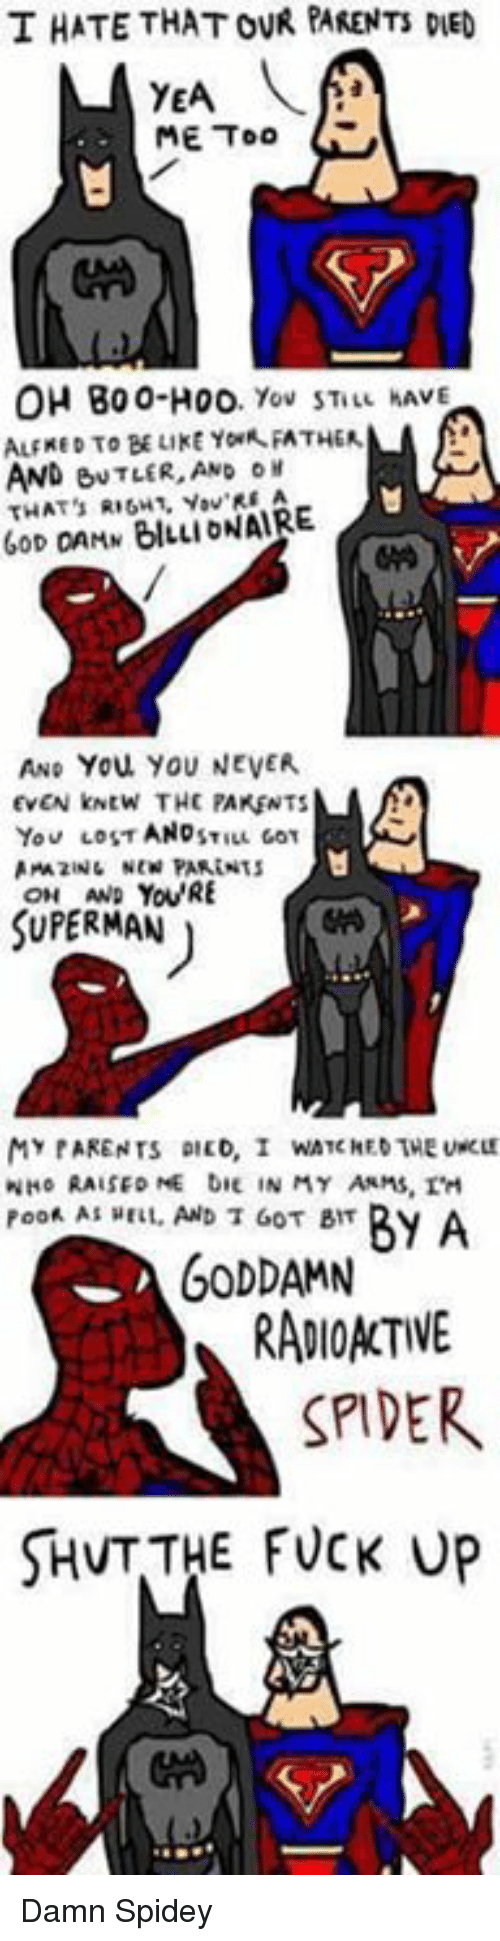 new parent: T HATE THAT OVR PARENTs DE  YEA  ME Too  OH Boo-H00  You STILL HAVE  ALFRED TO BE LIKE YowR FATHER  AND eNTLER, AND  THAT's BILLIONAIRE  GOD DAMN AND You, YOU NEVER.  EVEN kNtw THE PAKENTS  AND  You LOST  STILL GOT  AmzuNL NEW PARENTS  YOURE  SUPERMAN  MY PARENTS DILD, I WATCHED THE  WHo RAISED NE DIE IN MY ANMs, TH  By A  Poof AS HELL, AND T GOT BIT  GODDAMN  RADIOACTIVE  SPIDER  SHvT THE FUCK UP Damn Spidey